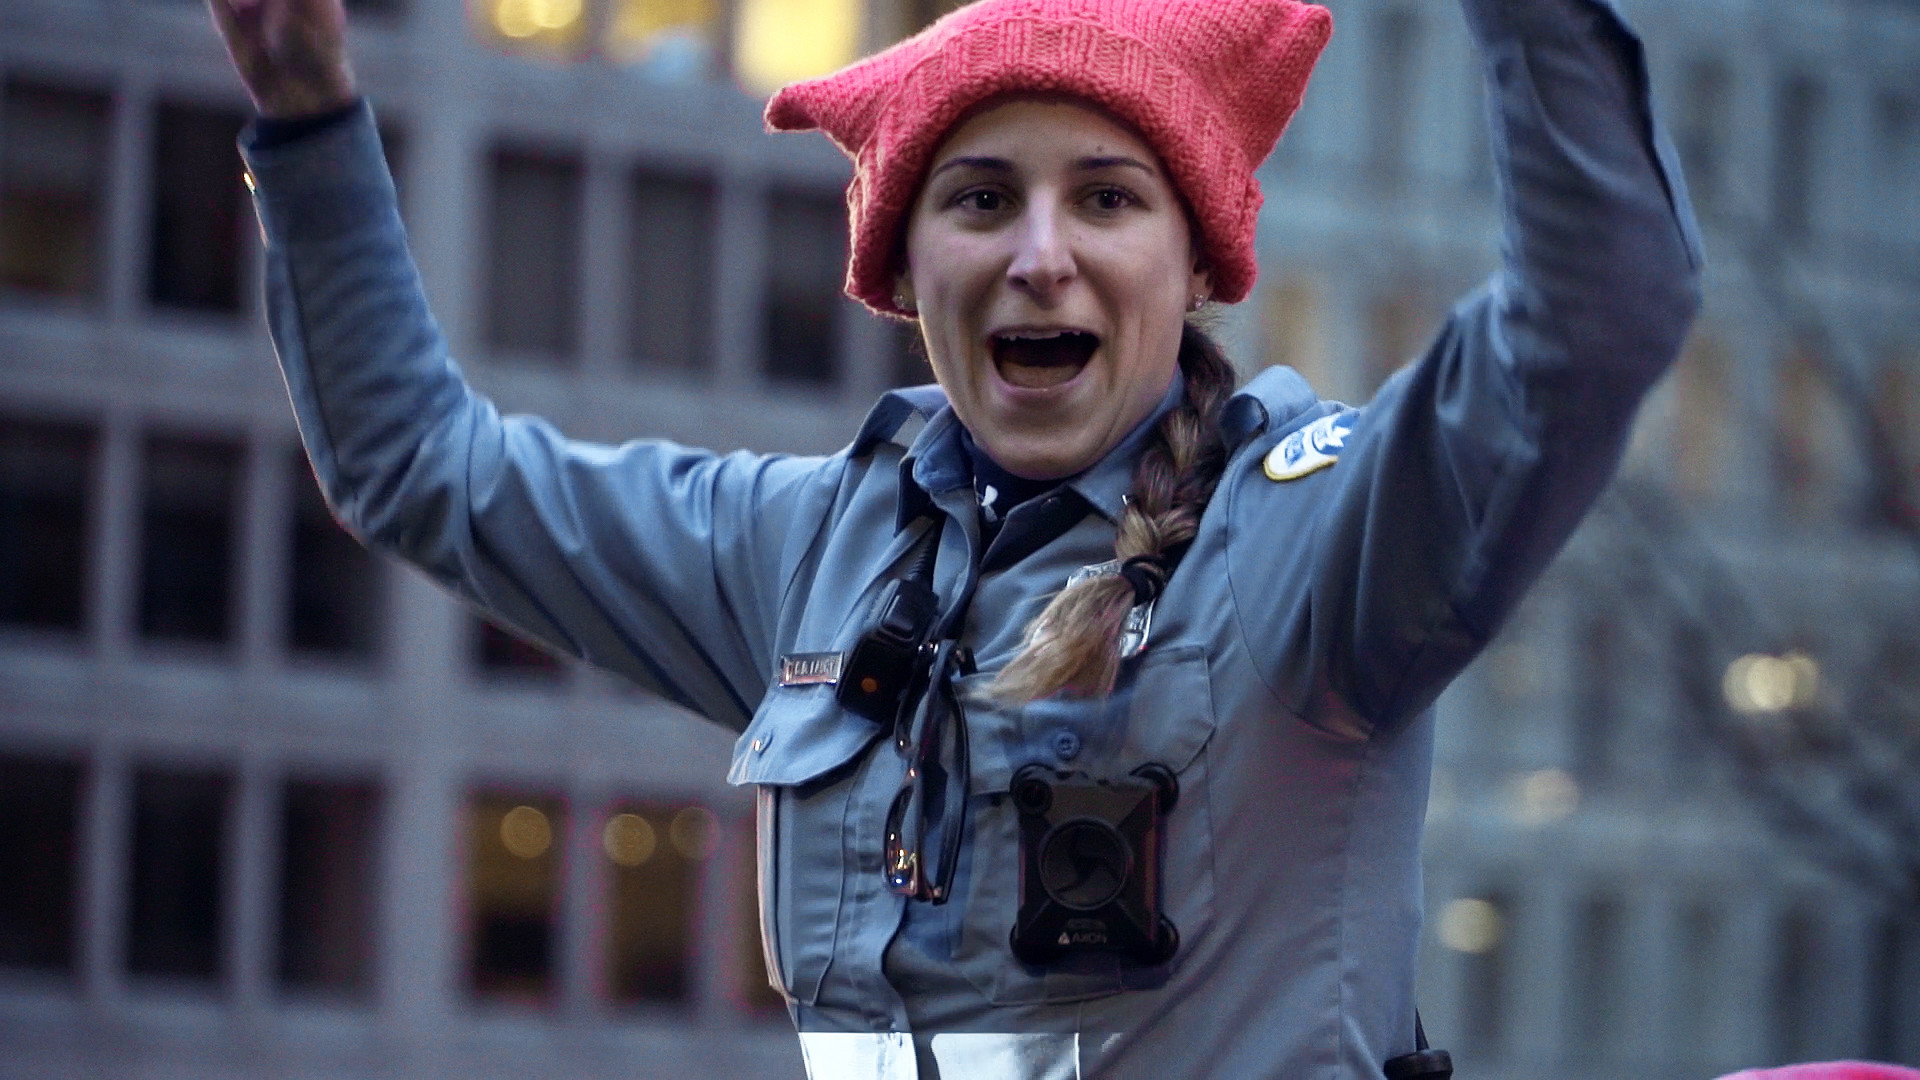 Dressed for Protest: The Women's March & Beyond  (Directed by Amber Moelter)